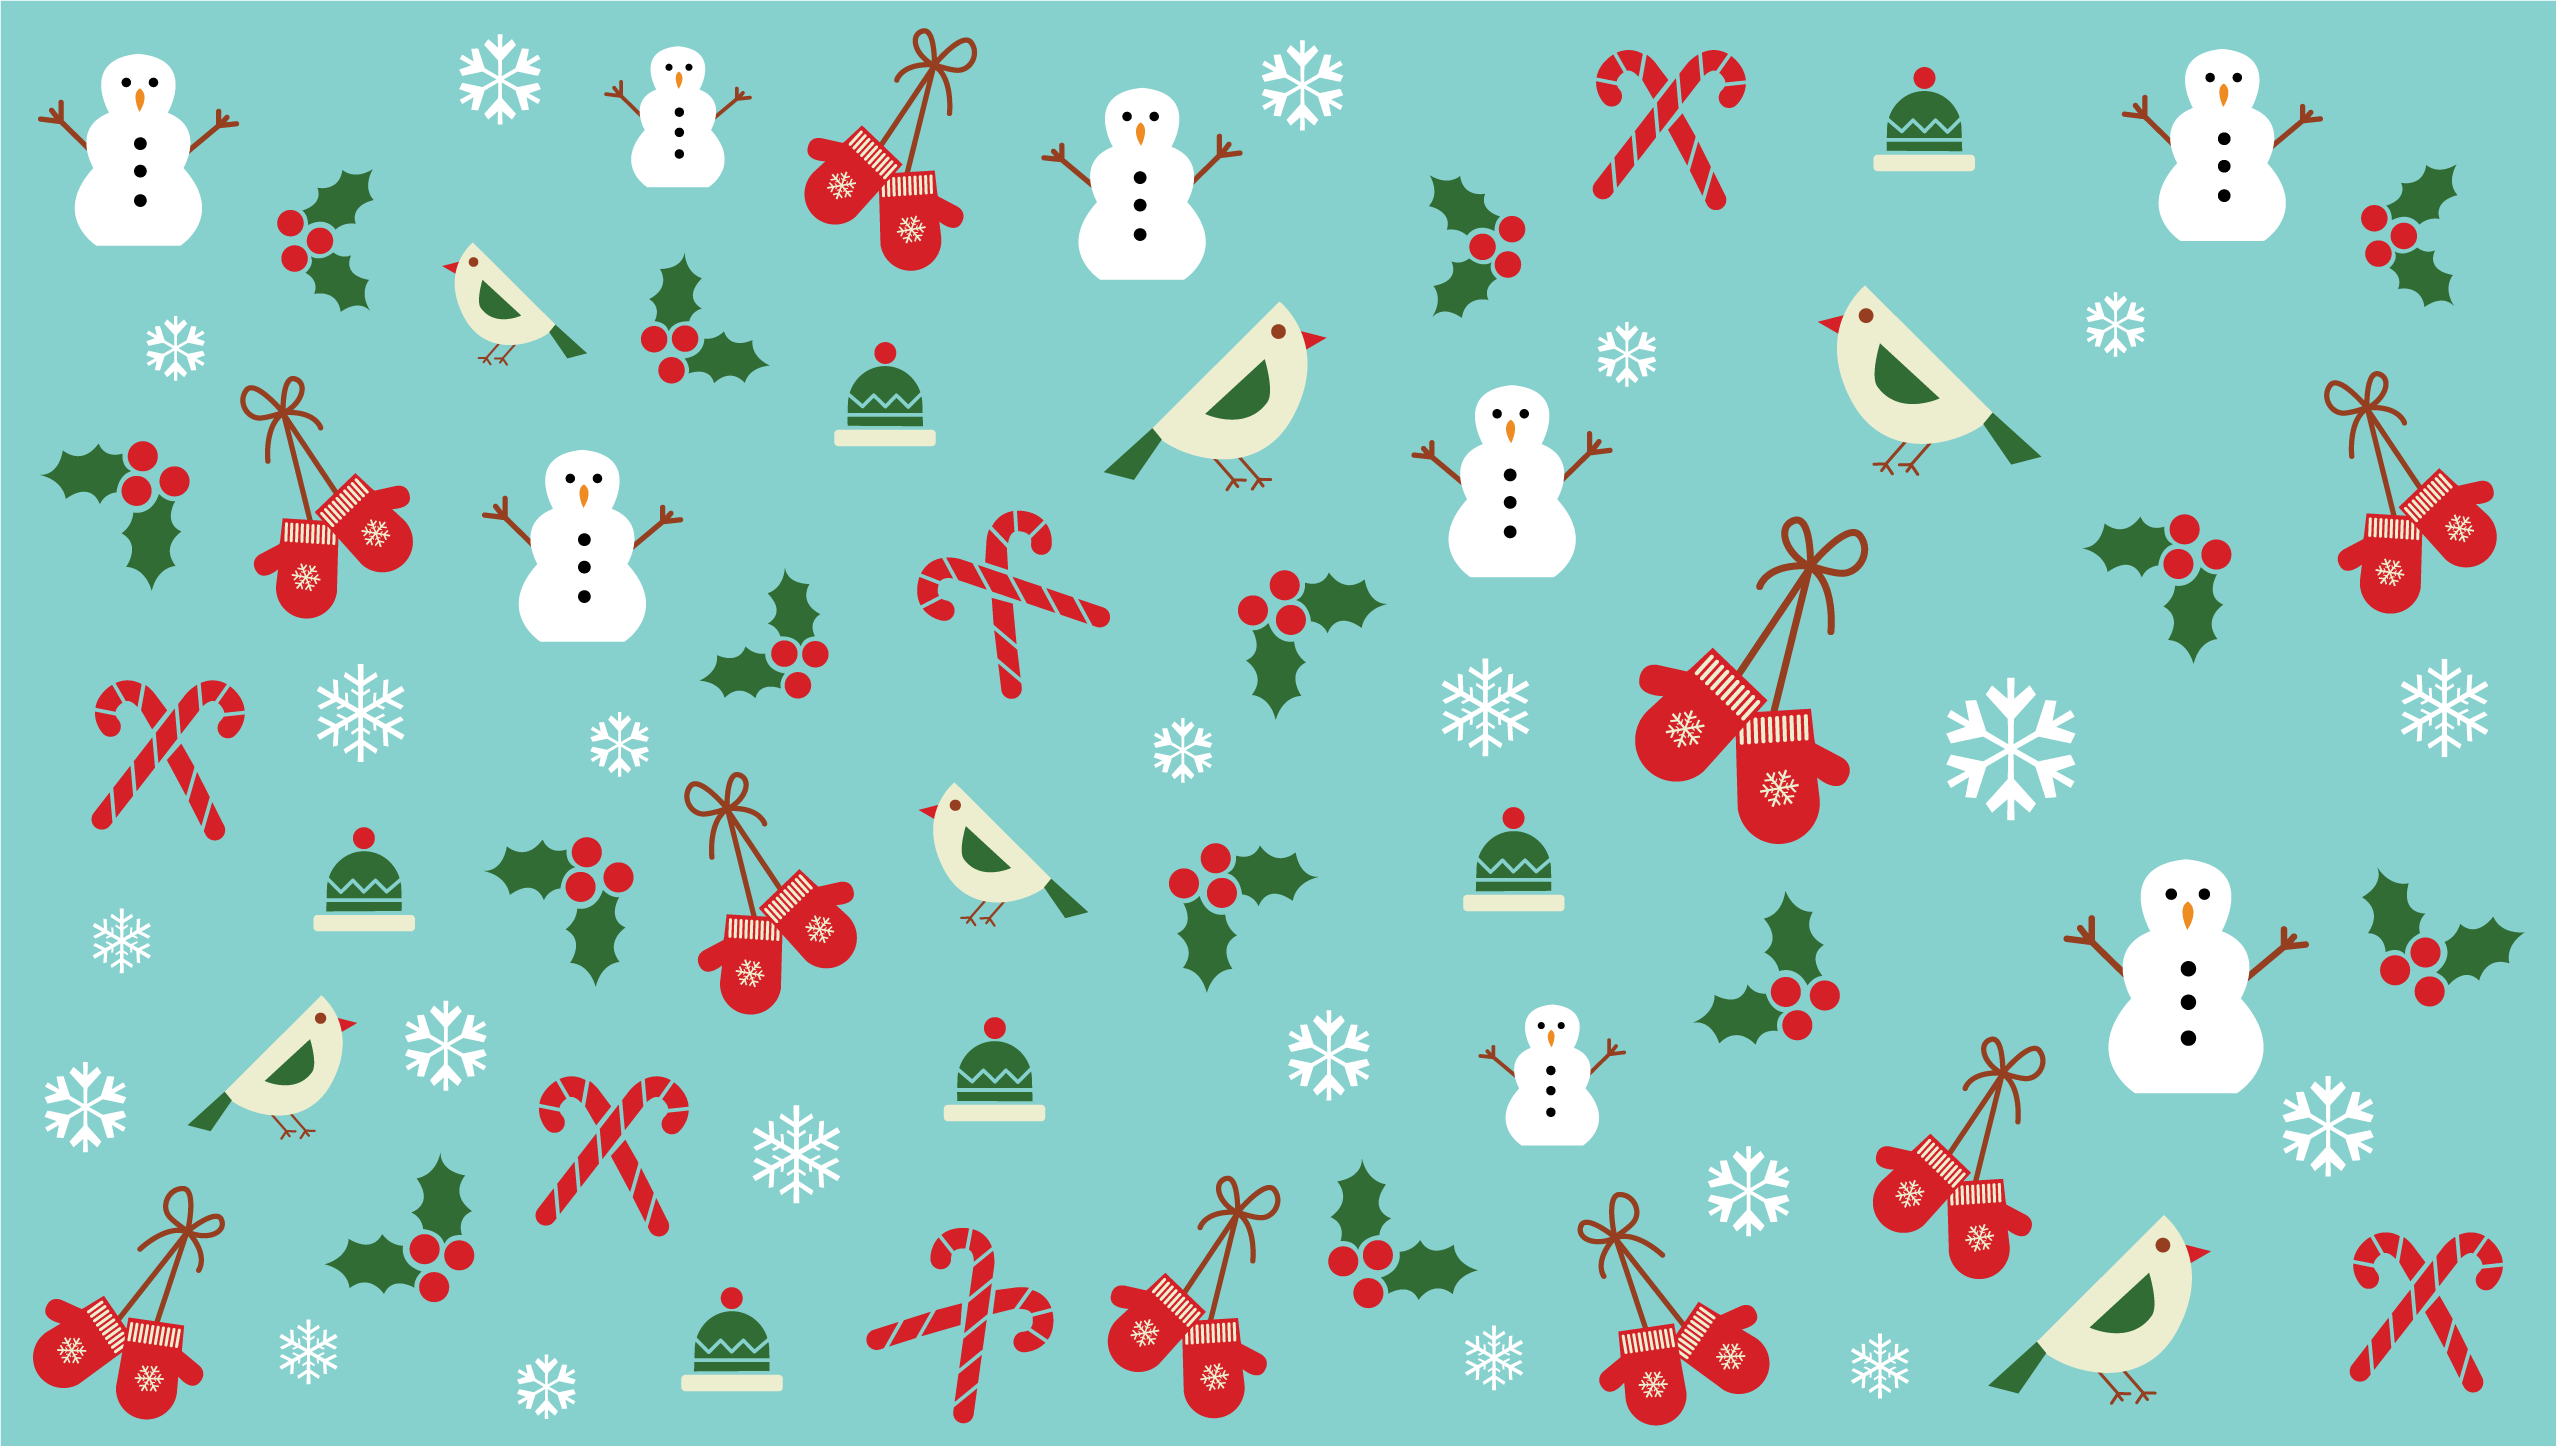 Free Holiday Backgrounds | BsnSCB.com Free Holiday